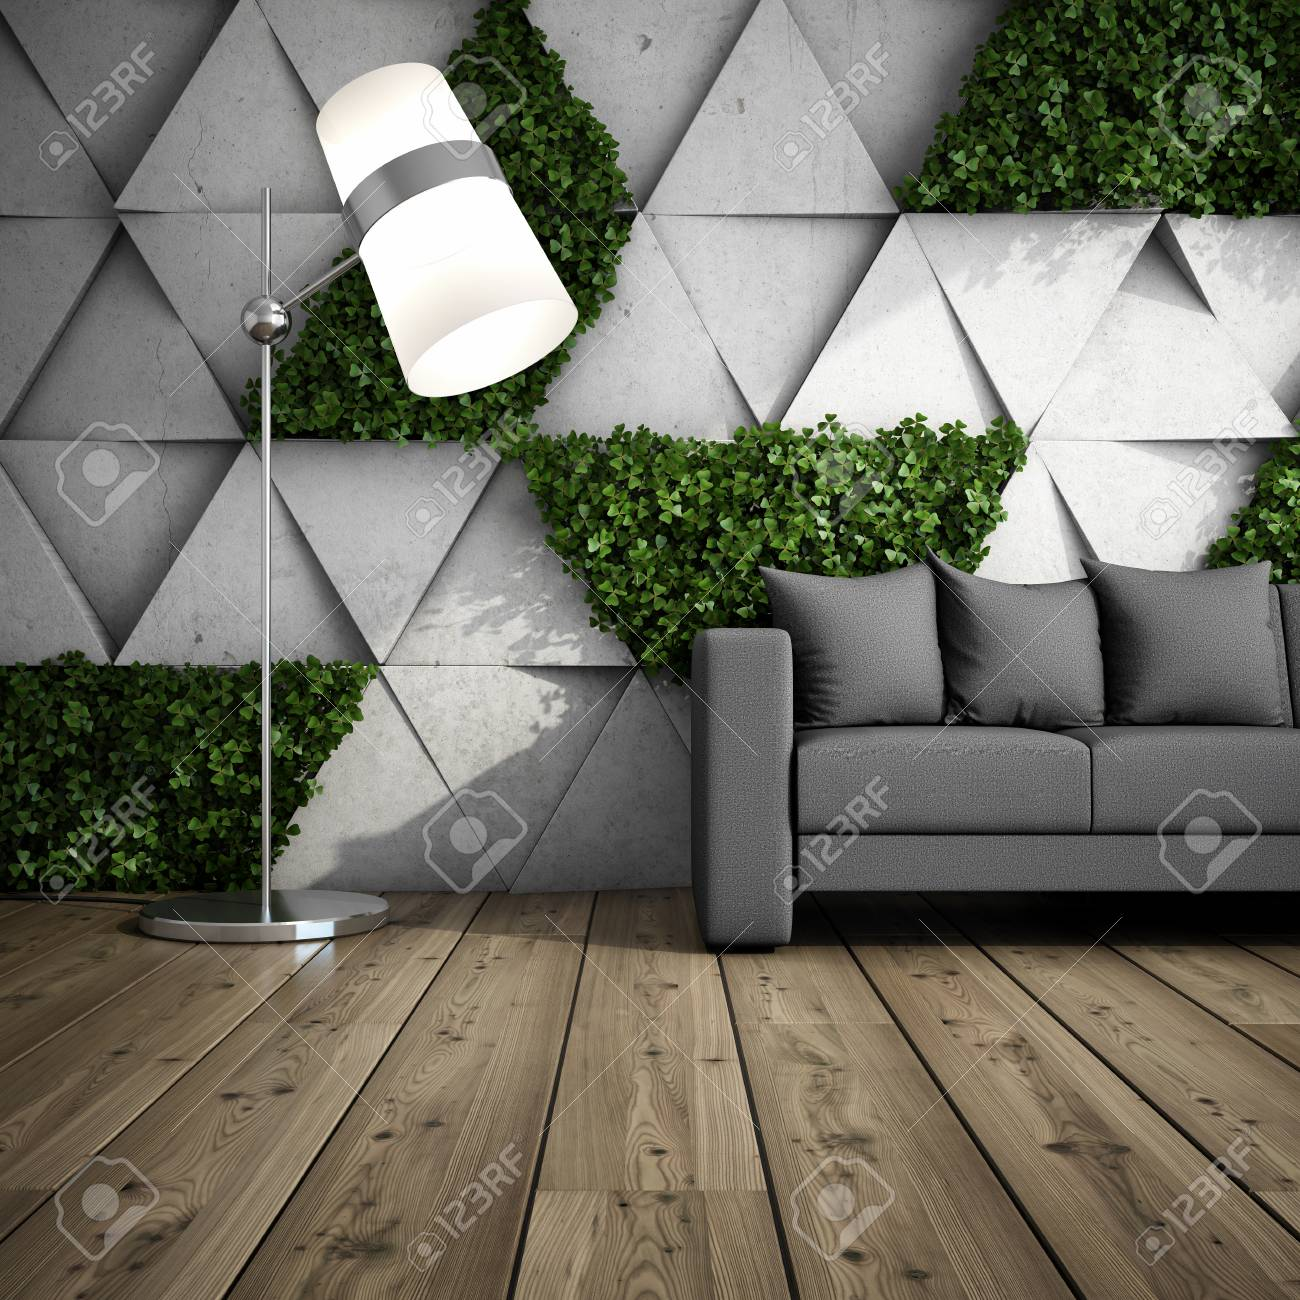 Lounge Zone In Modern Interior With Concrete Wall Of Blocks And ...